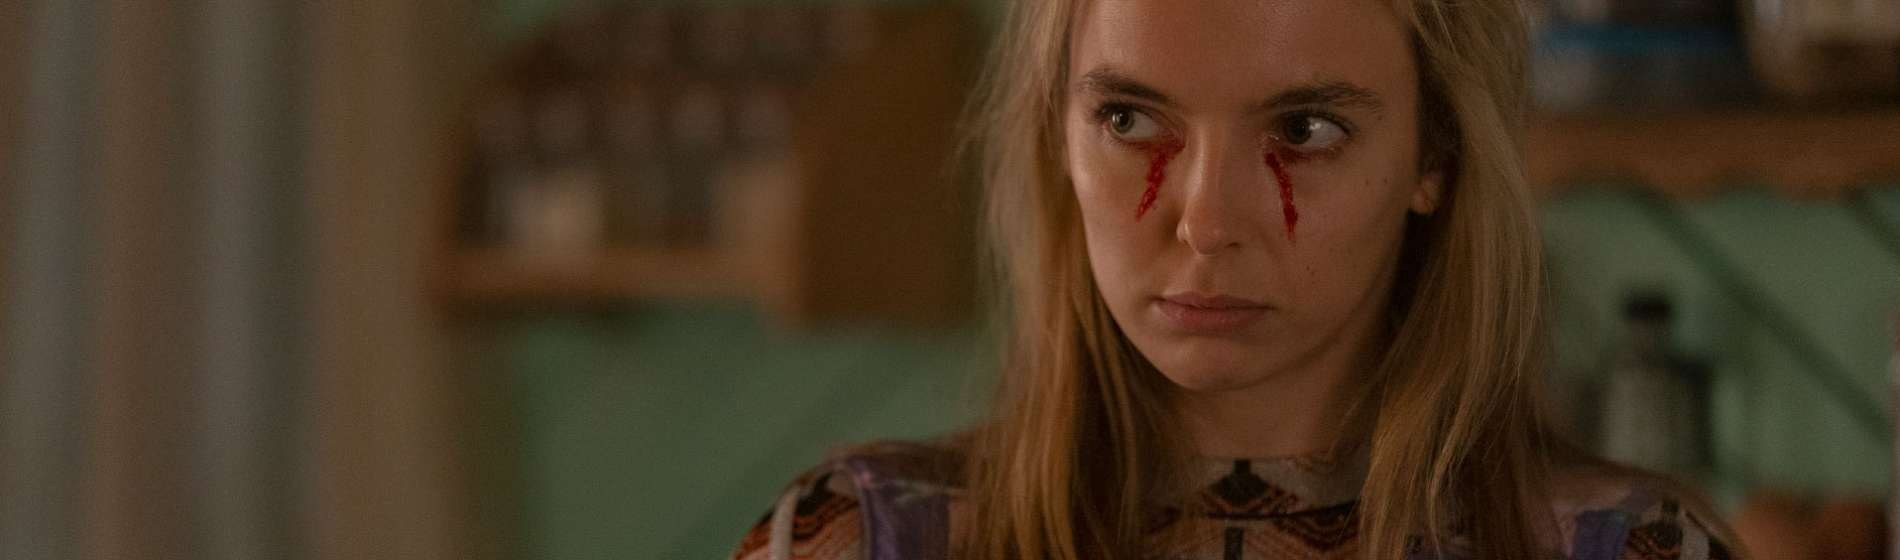 Killing Eve 3.05 Villanelle Bleeding Eyes